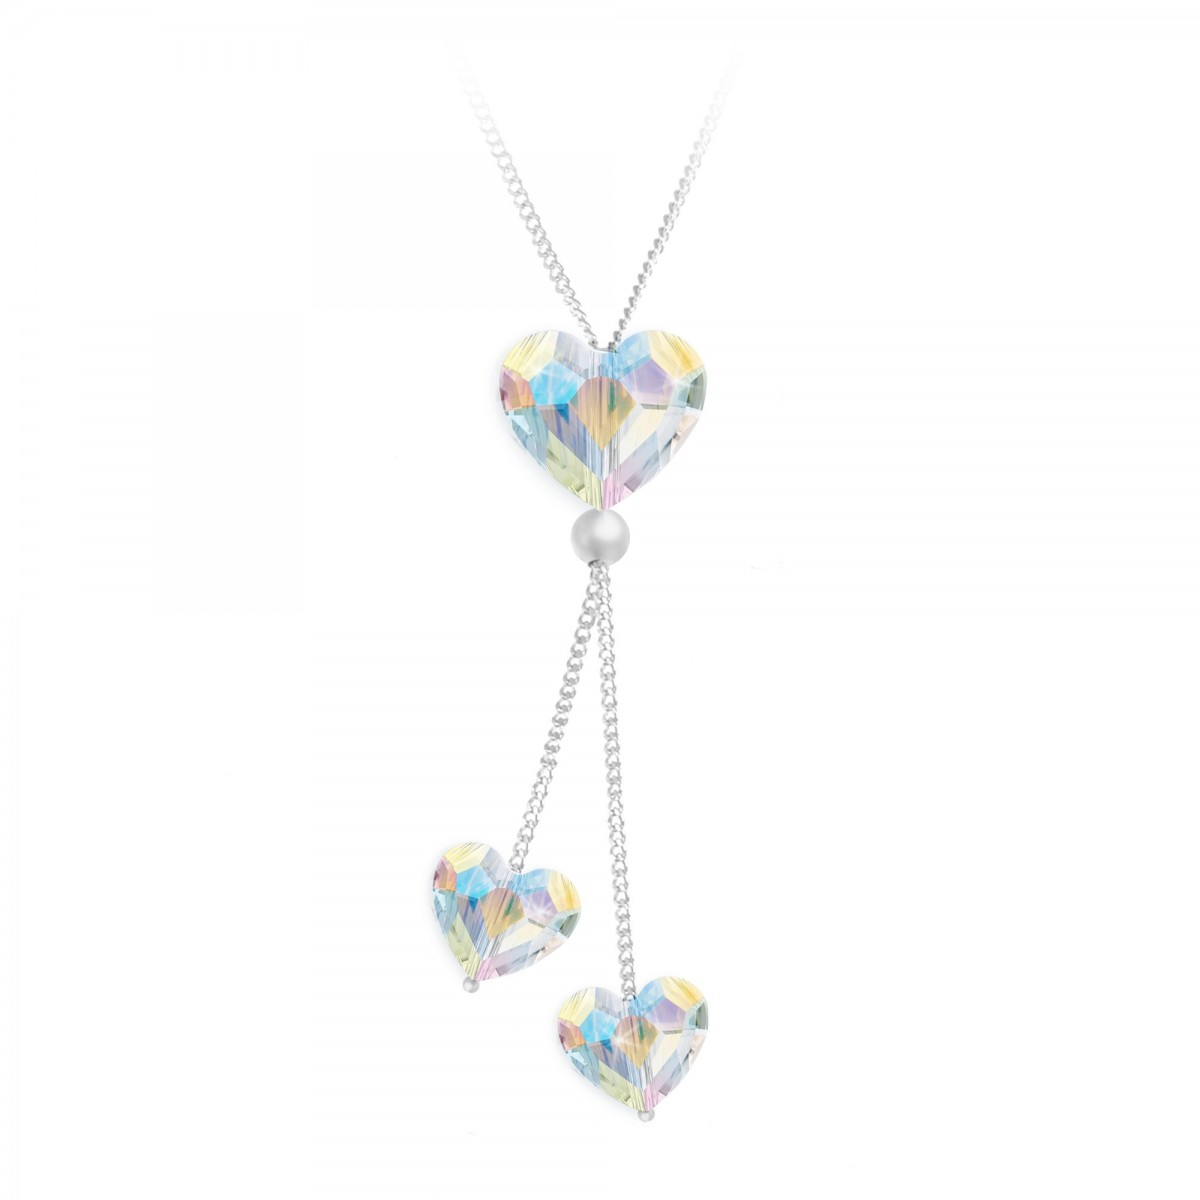 Collier mode coeurs So Charm made with crystals from Swarovski